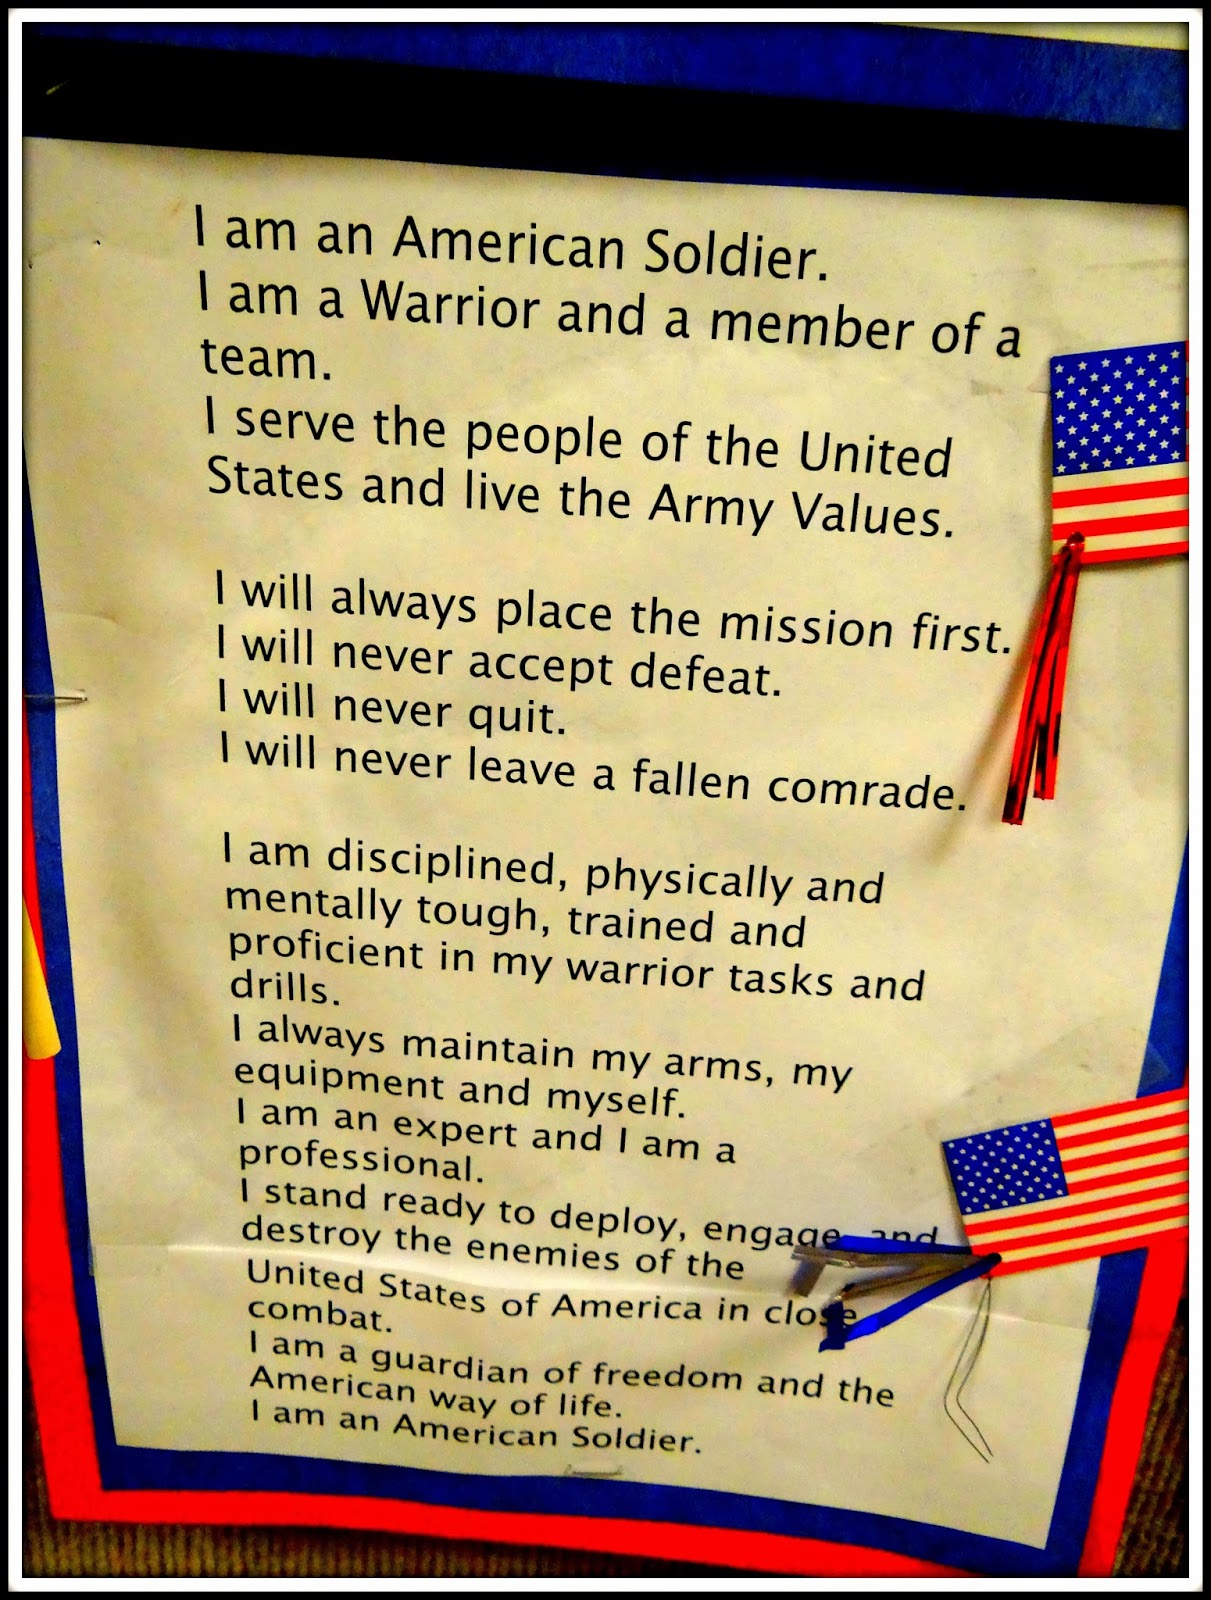 patties classroom veterans day art and activities for kids my nephew tyler posted this on facebook when he was in the army boot camp i loved it